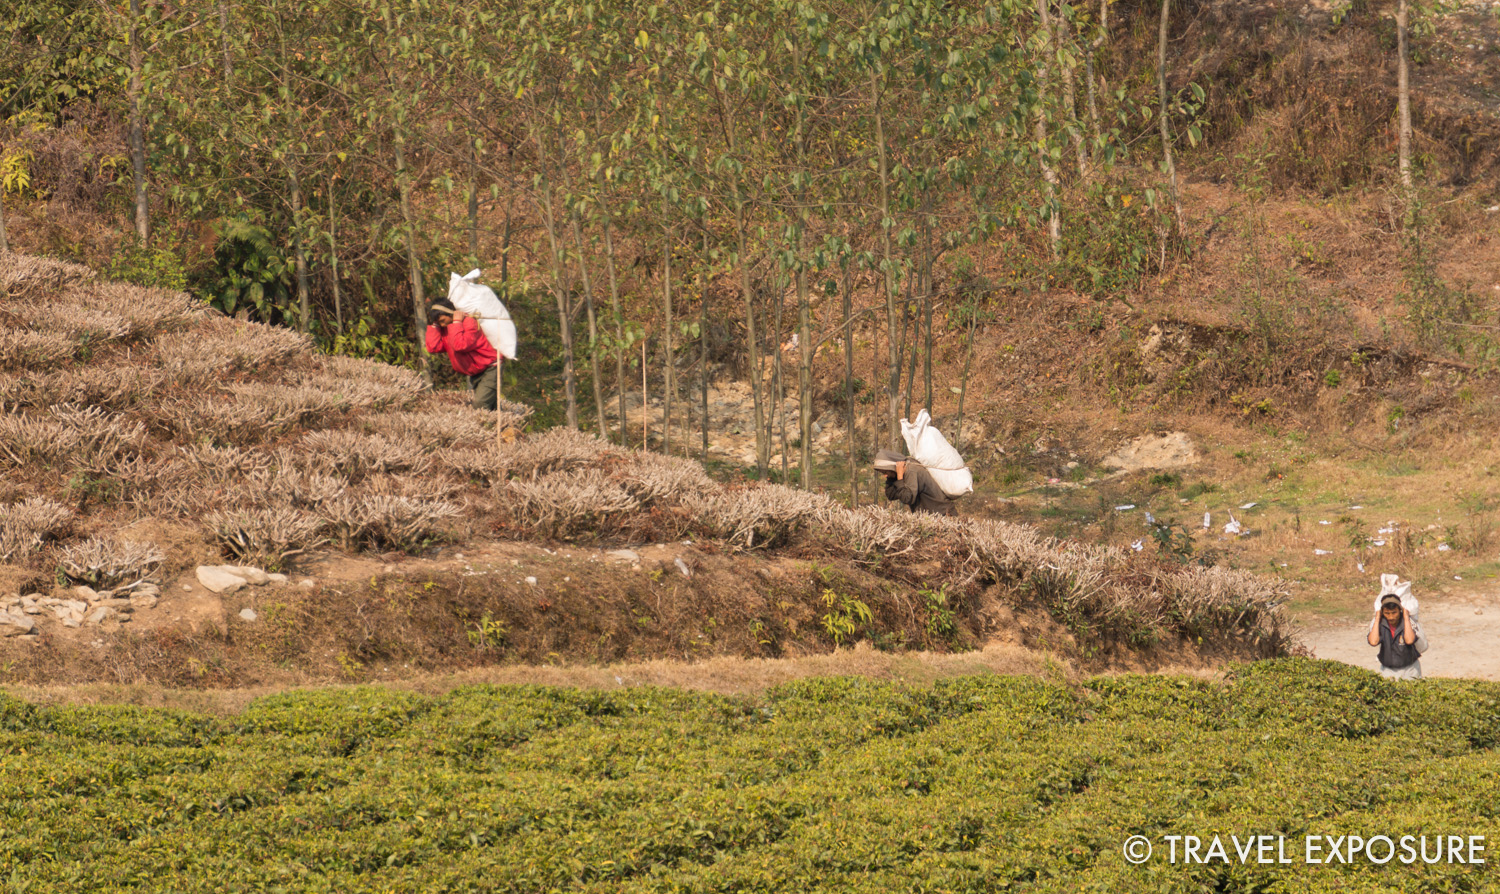 Workers at the Temi Tea Garden in Sikkim